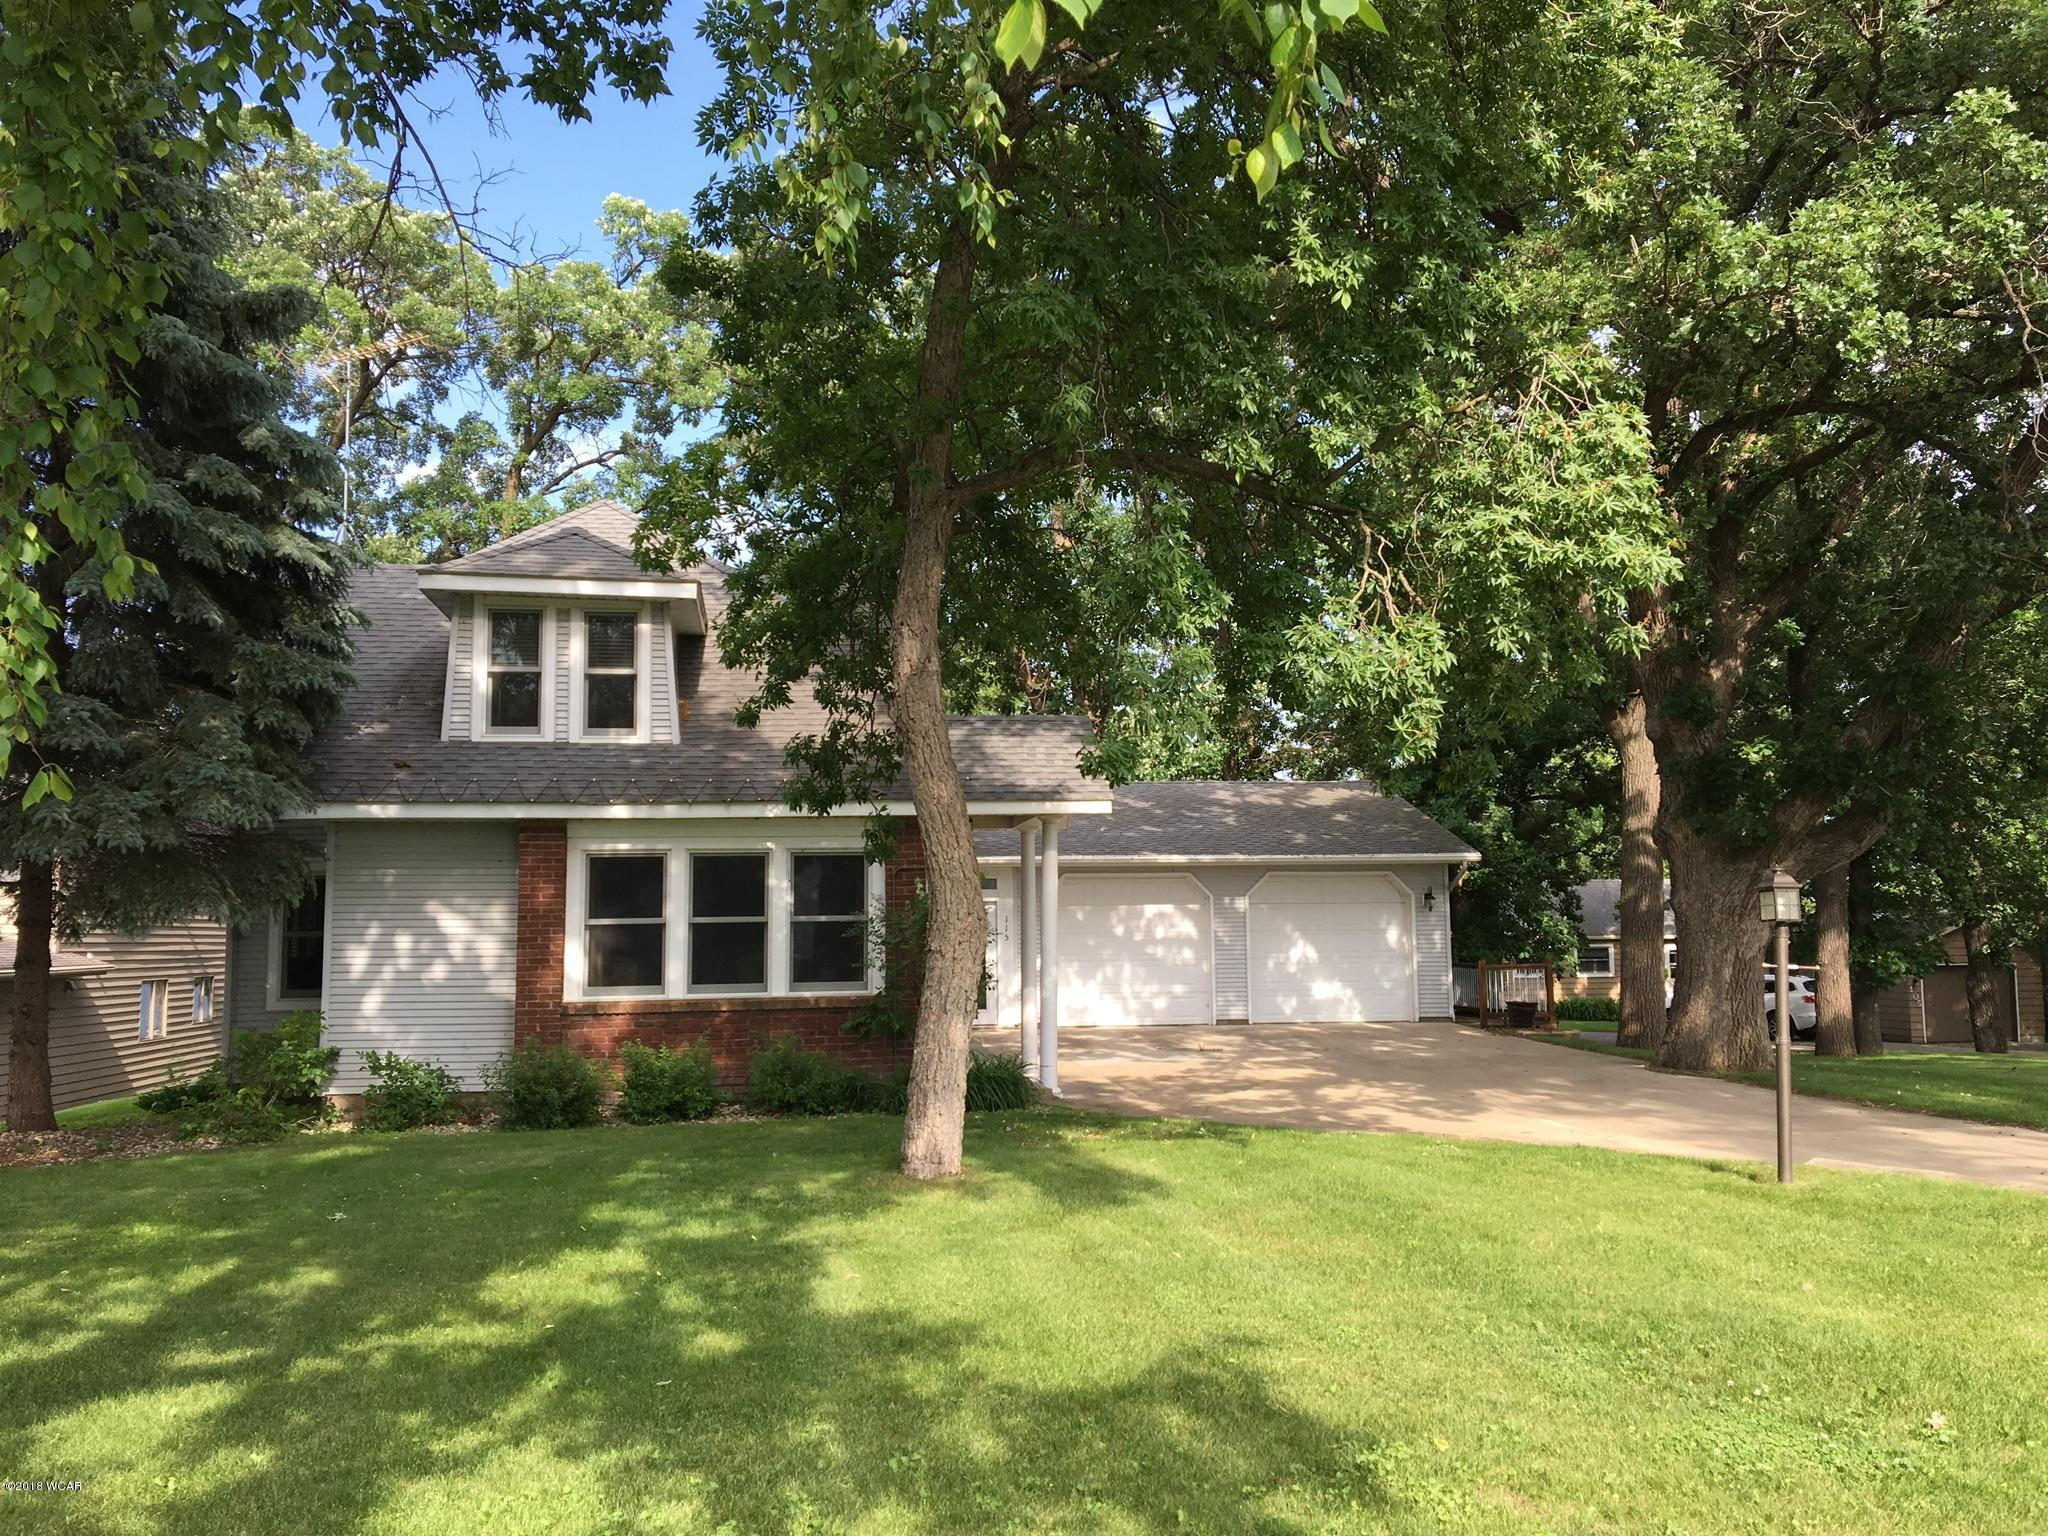 115 Lake Avenue,Spicer,3 Bedrooms Bedrooms,3 BathroomsBathrooms,Single Family,Lake Avenue,6028968